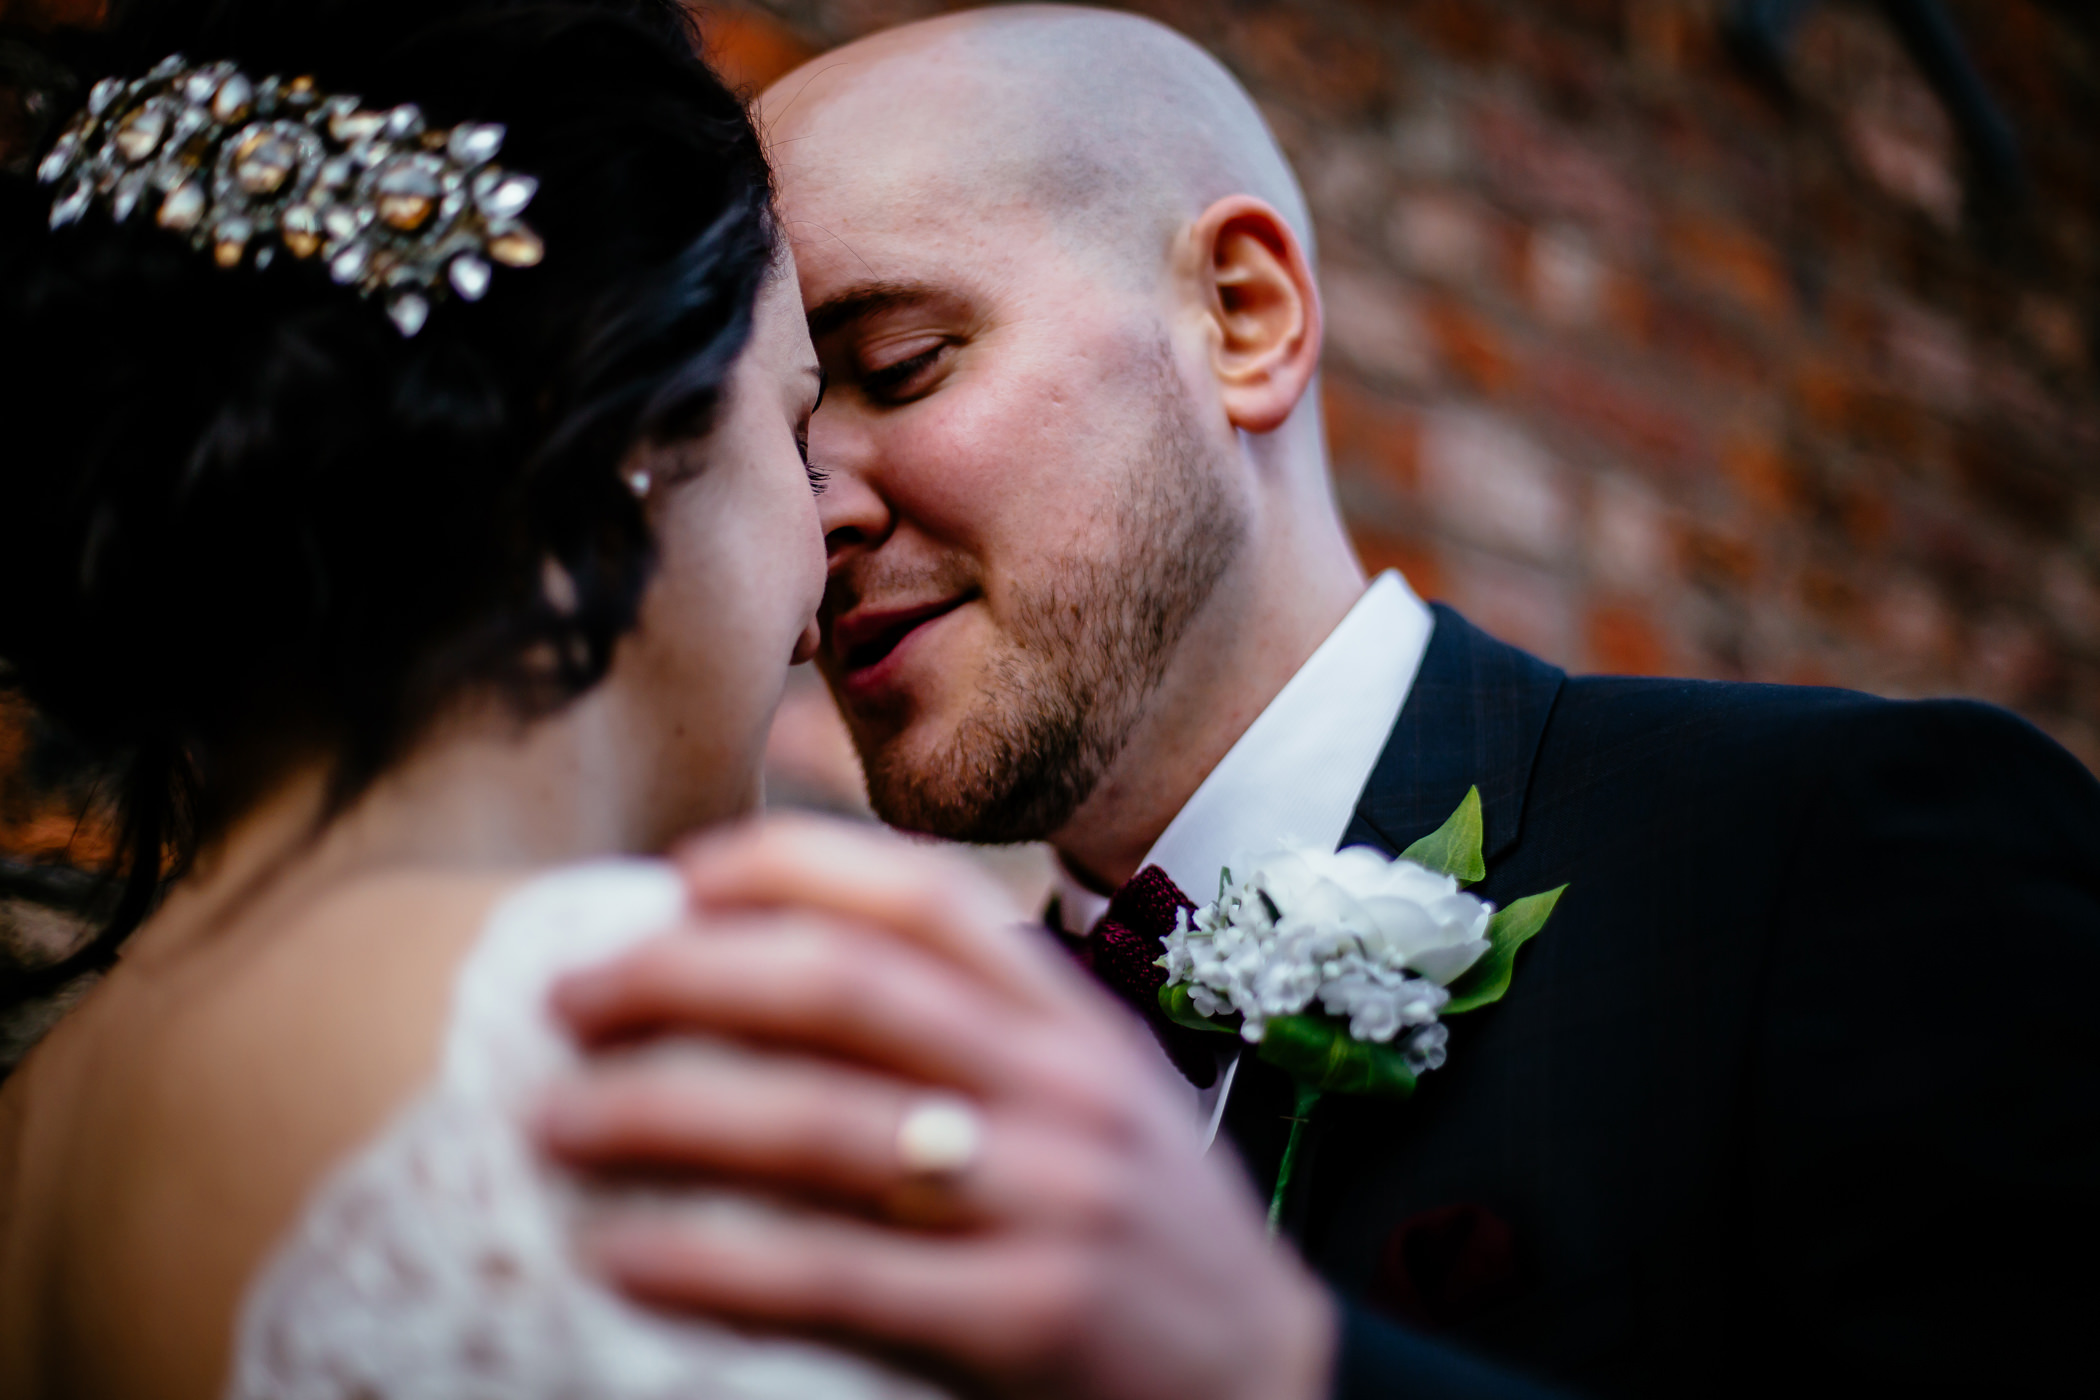 Georgie & steve - Sansom photography Grays Court York Wedding-47